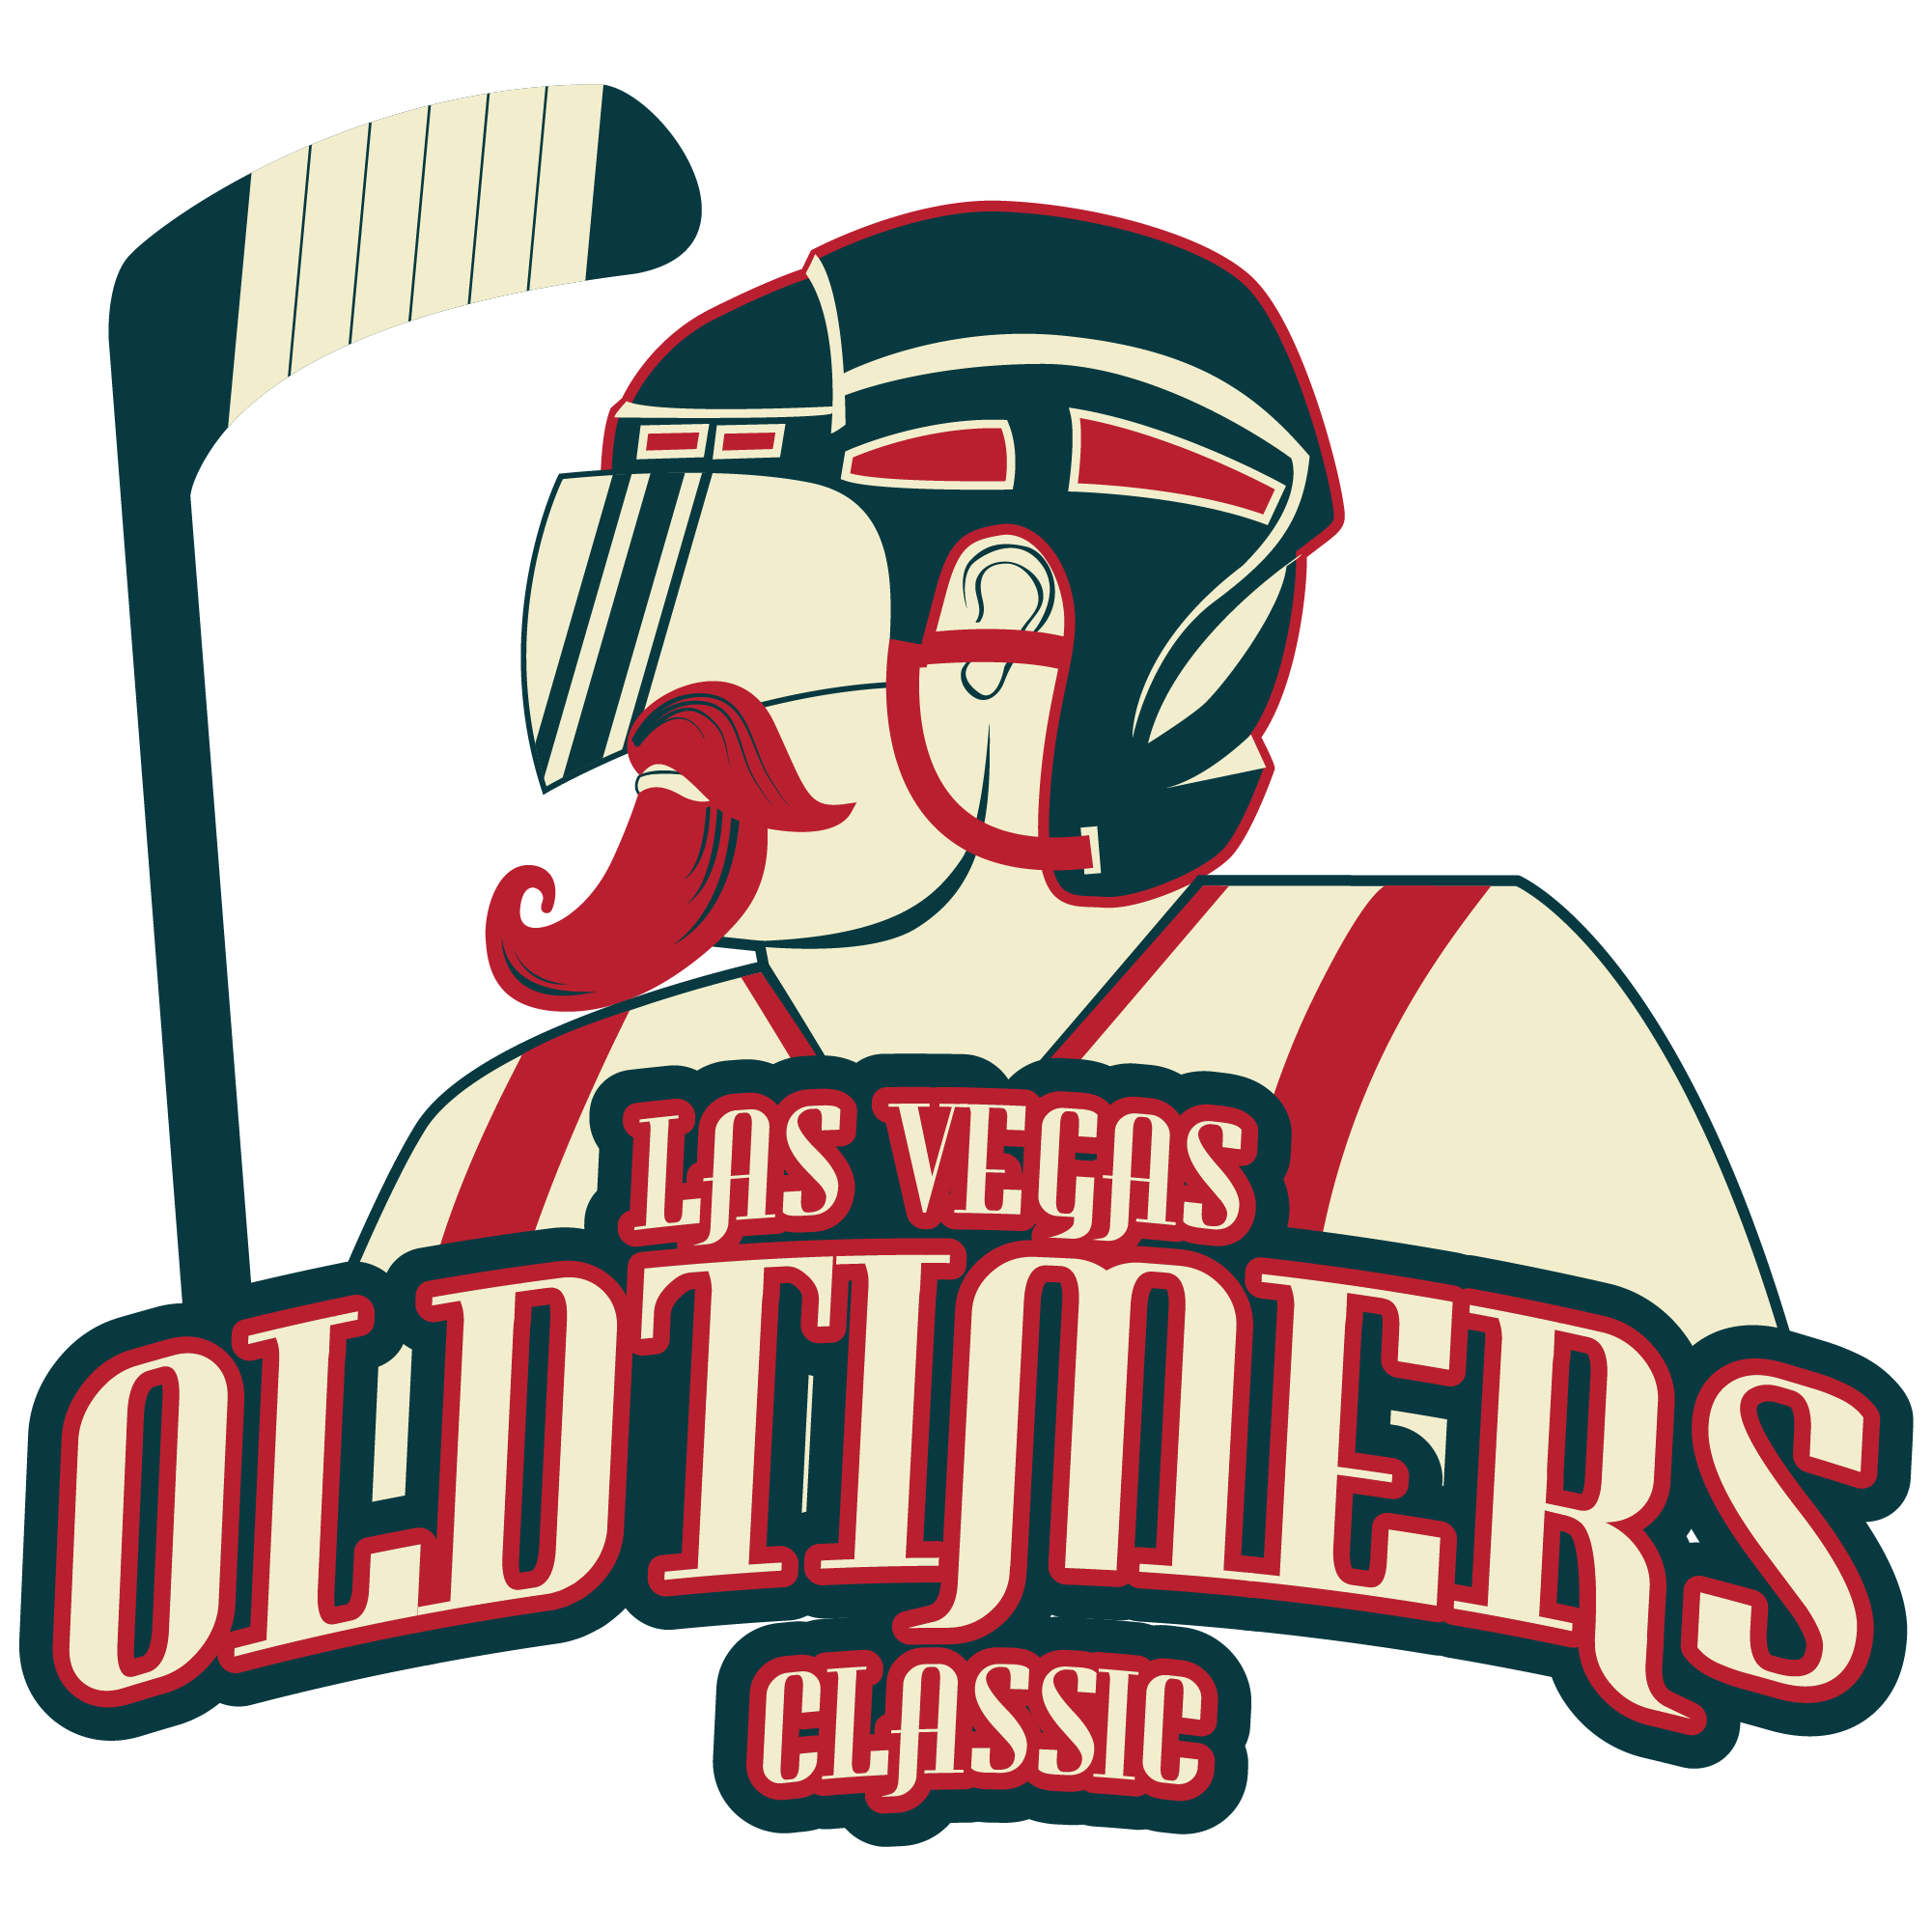 Las vegas clipart word. Old timers classic cct